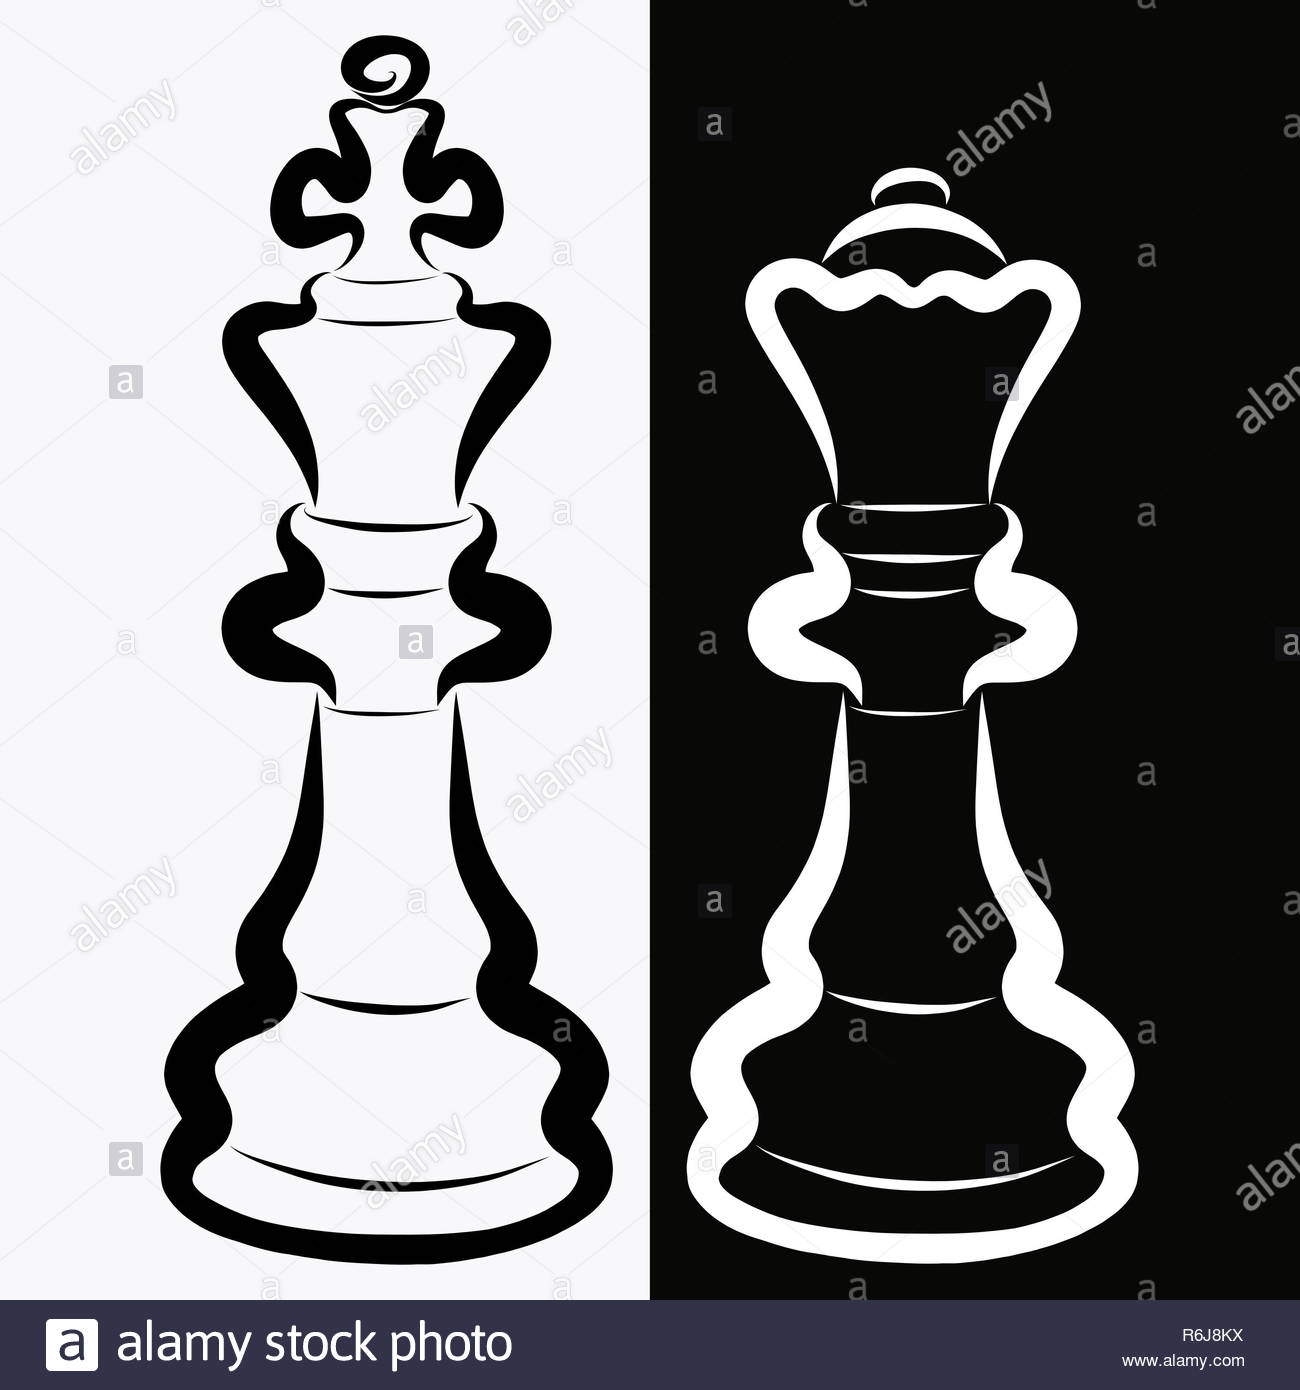 Chess pieces black king and white queen rivalry or romance